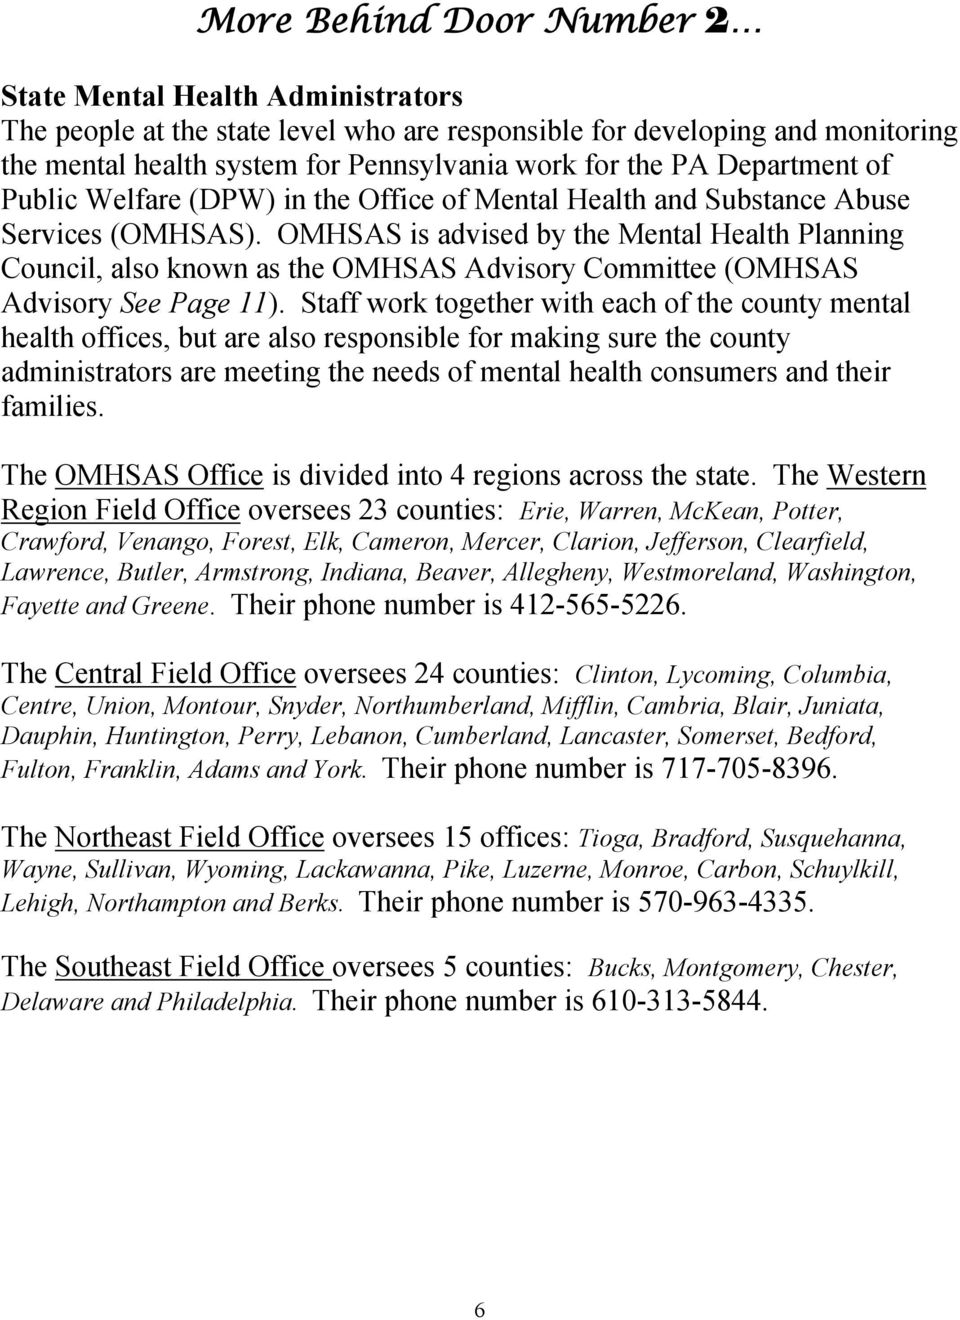 OMHSAS is advised by the Mental Health Planning Council, also known as the OMHSAS Advisory Committee (OMHSAS Advisory See Page 11).